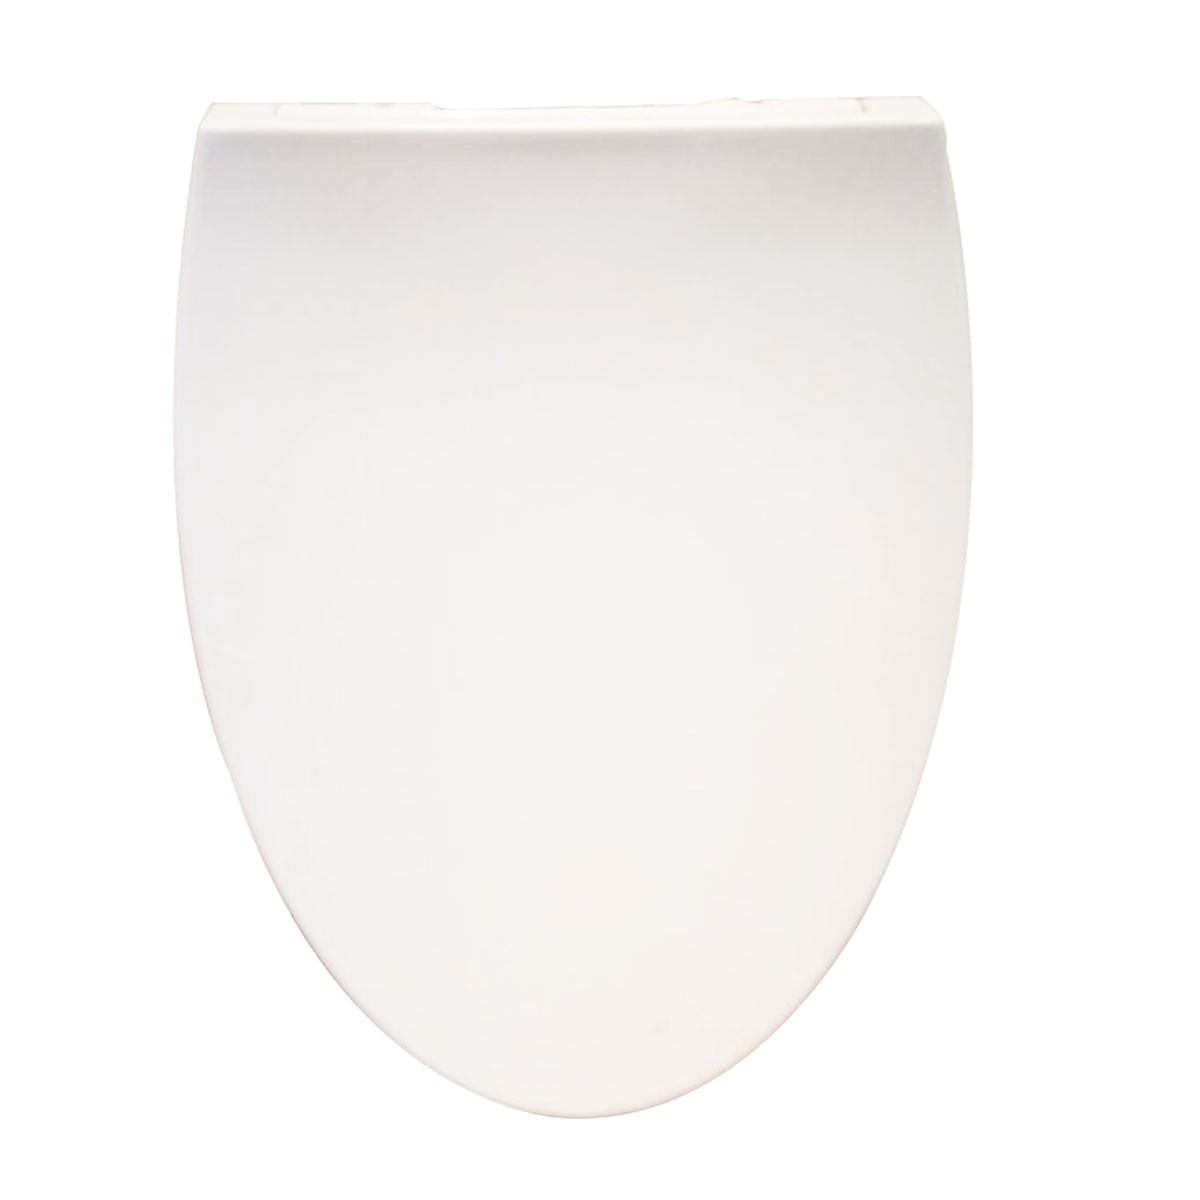 PP White Round Closed Front Soft Close Toilet Seat with Cover (DK-CL-058)